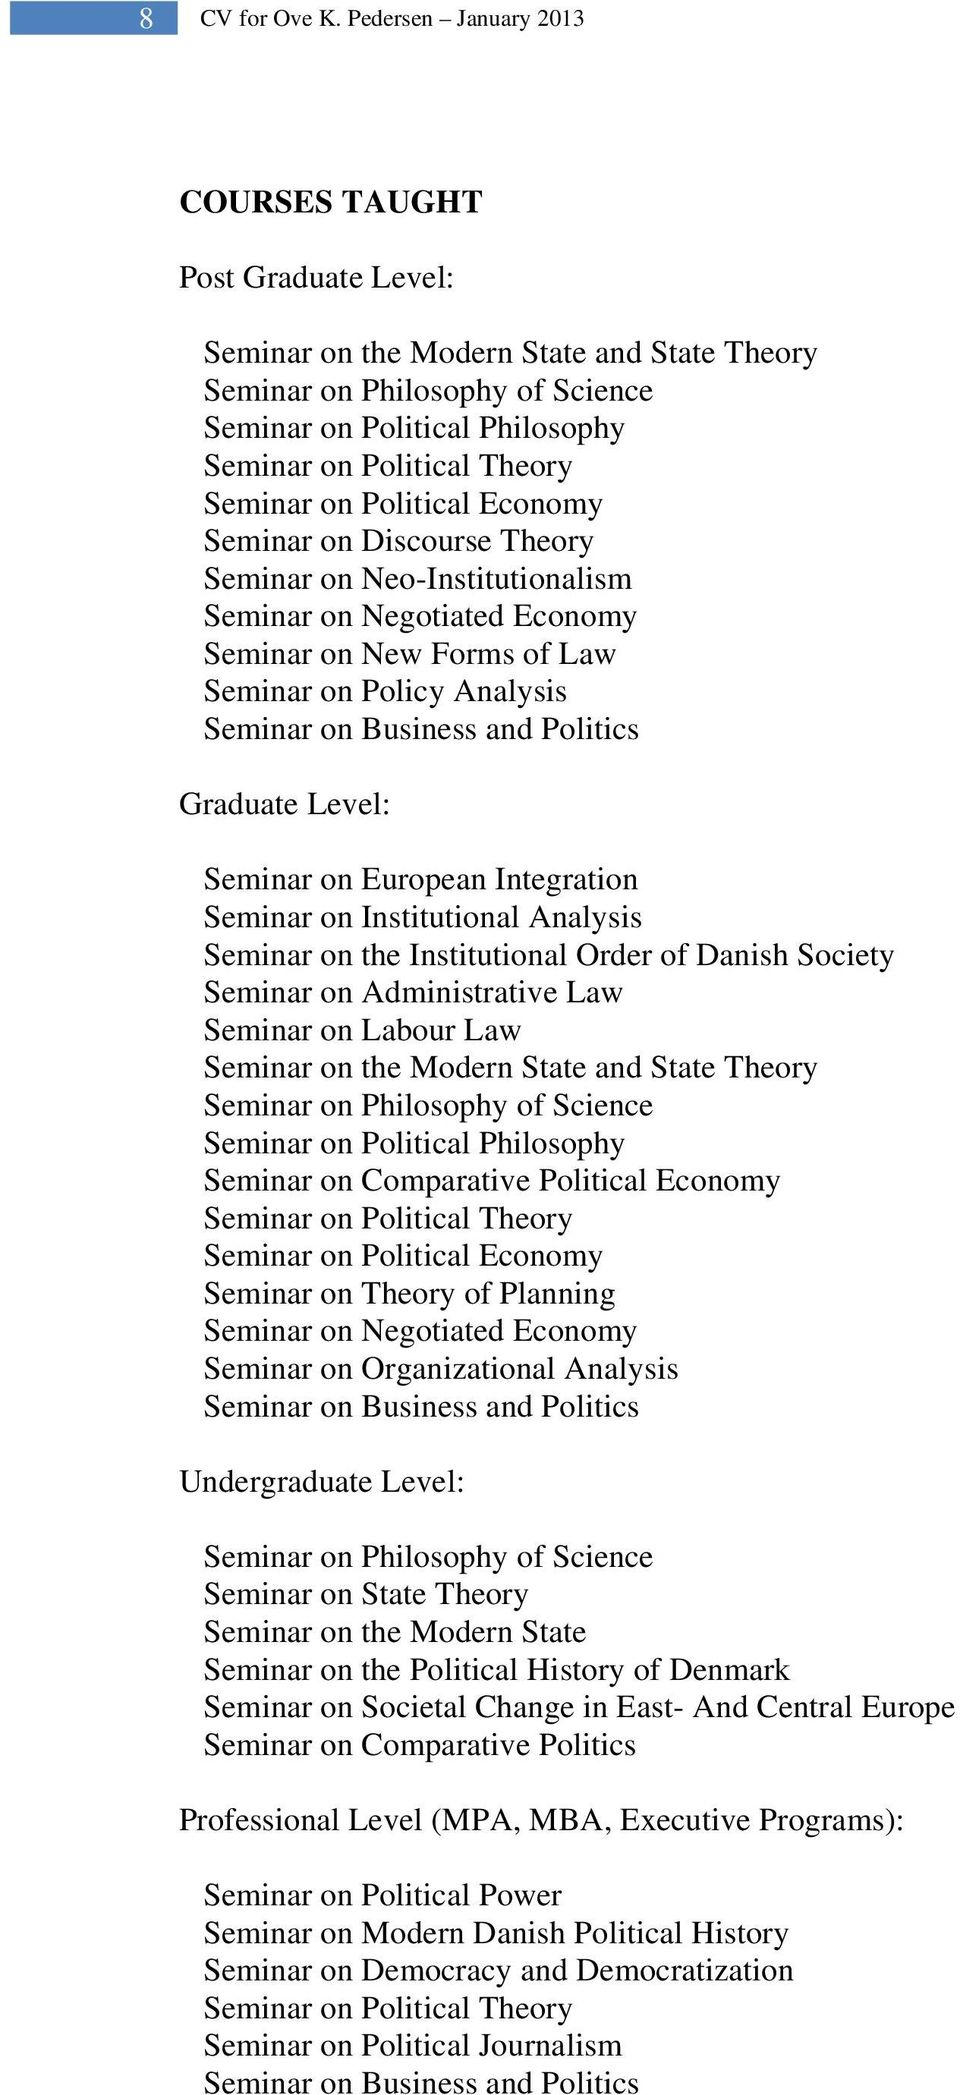 Seminar on Political Economy Seminar on Discourse Theory Seminar on Neo-Institutionalism Seminar on Negotiated Economy Seminar on New Forms of Law Seminar on Policy Analysis Seminar on Business and